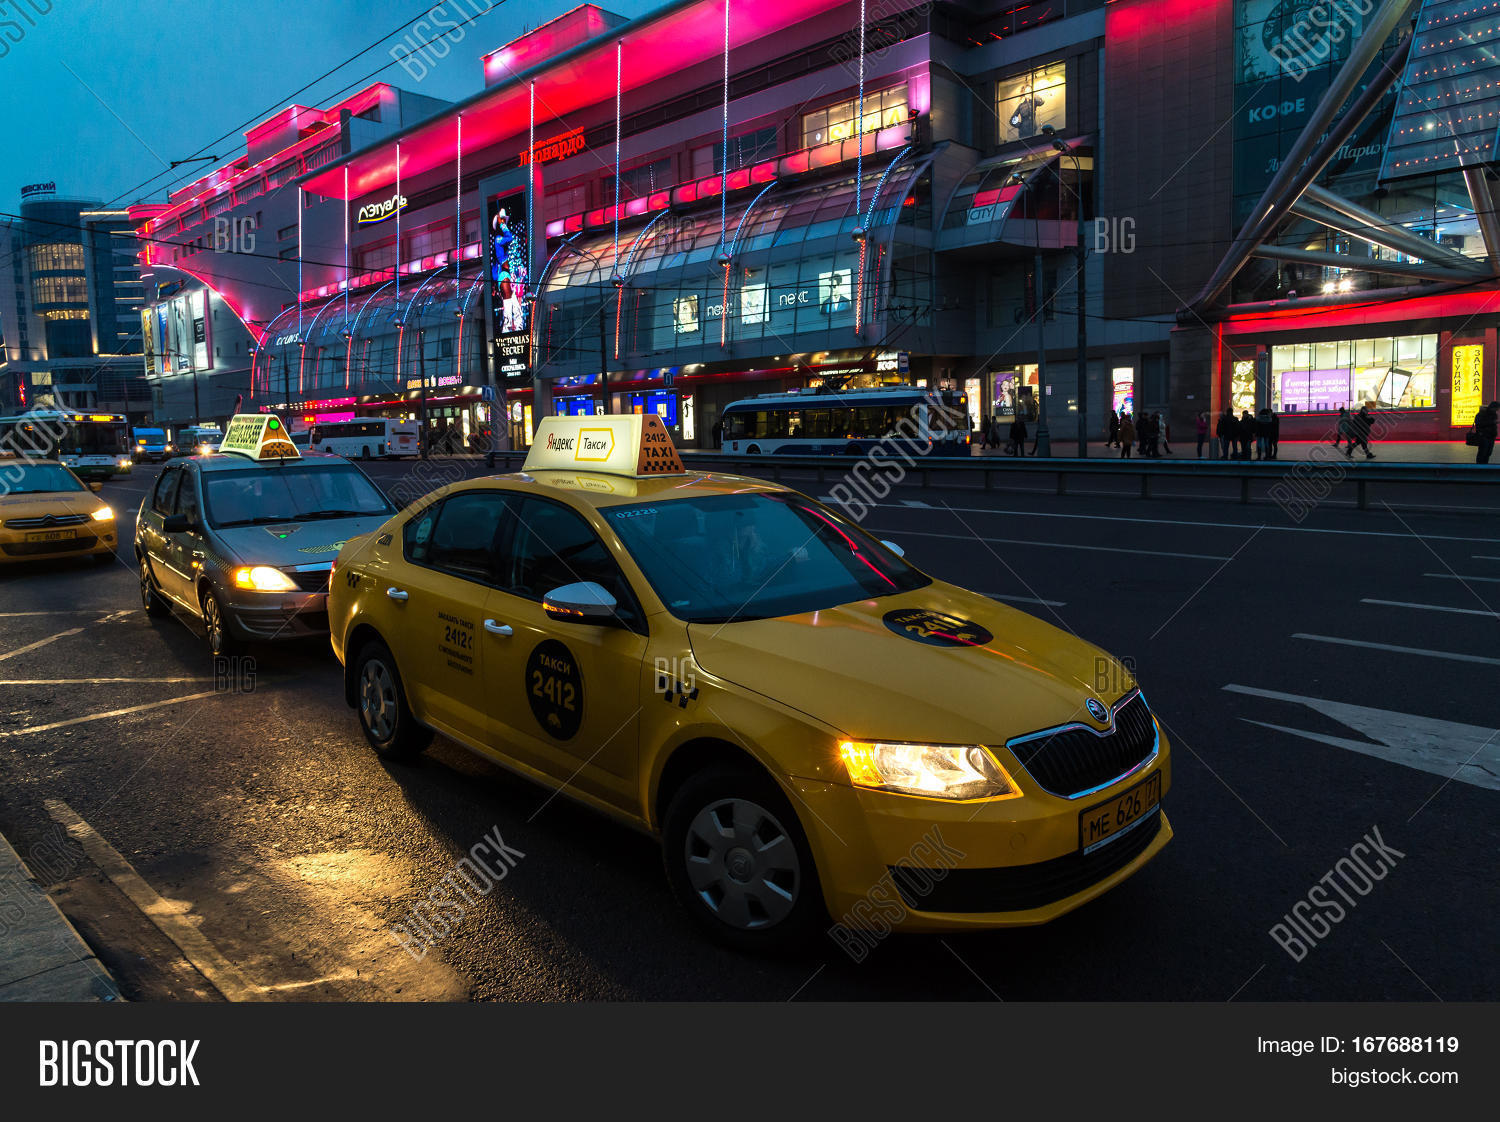 Moscow, Russia - Image & Photo (Free Trial) | Bigstock